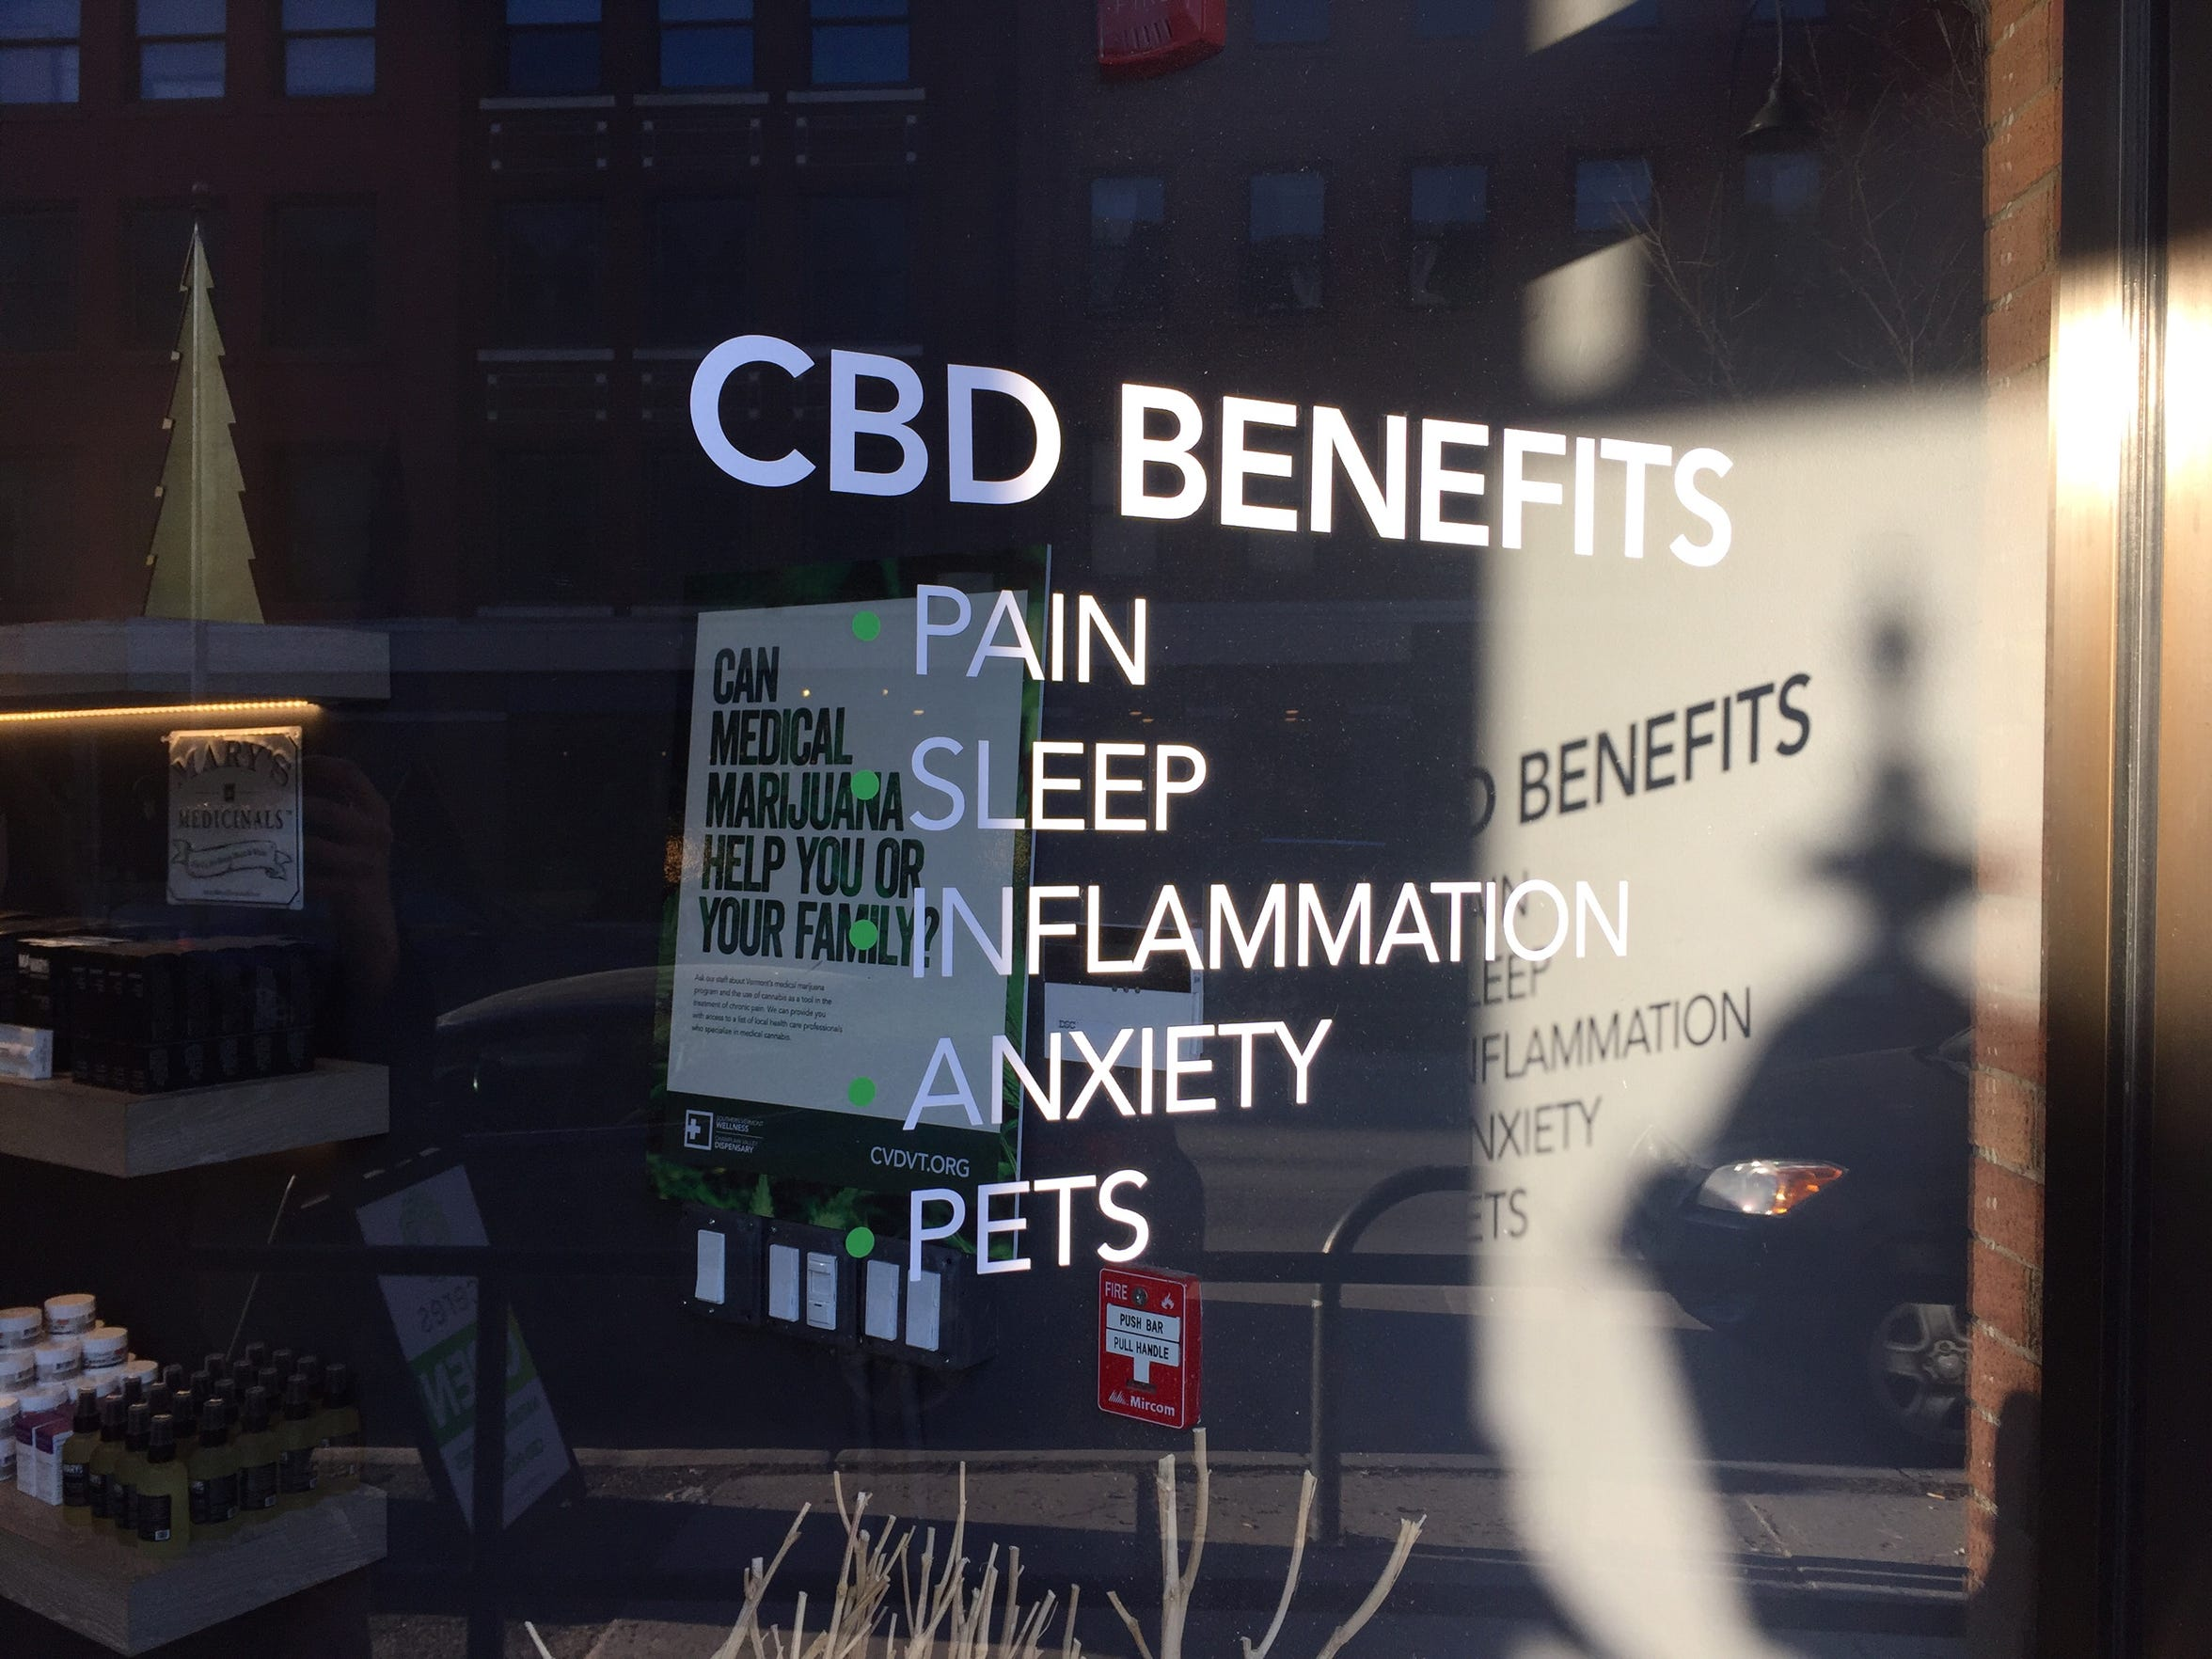 The Ceres Natural Remedies store in downtown Burlington advertises a variety of advantages of using CBD products, which are rapidly gaining popularity.